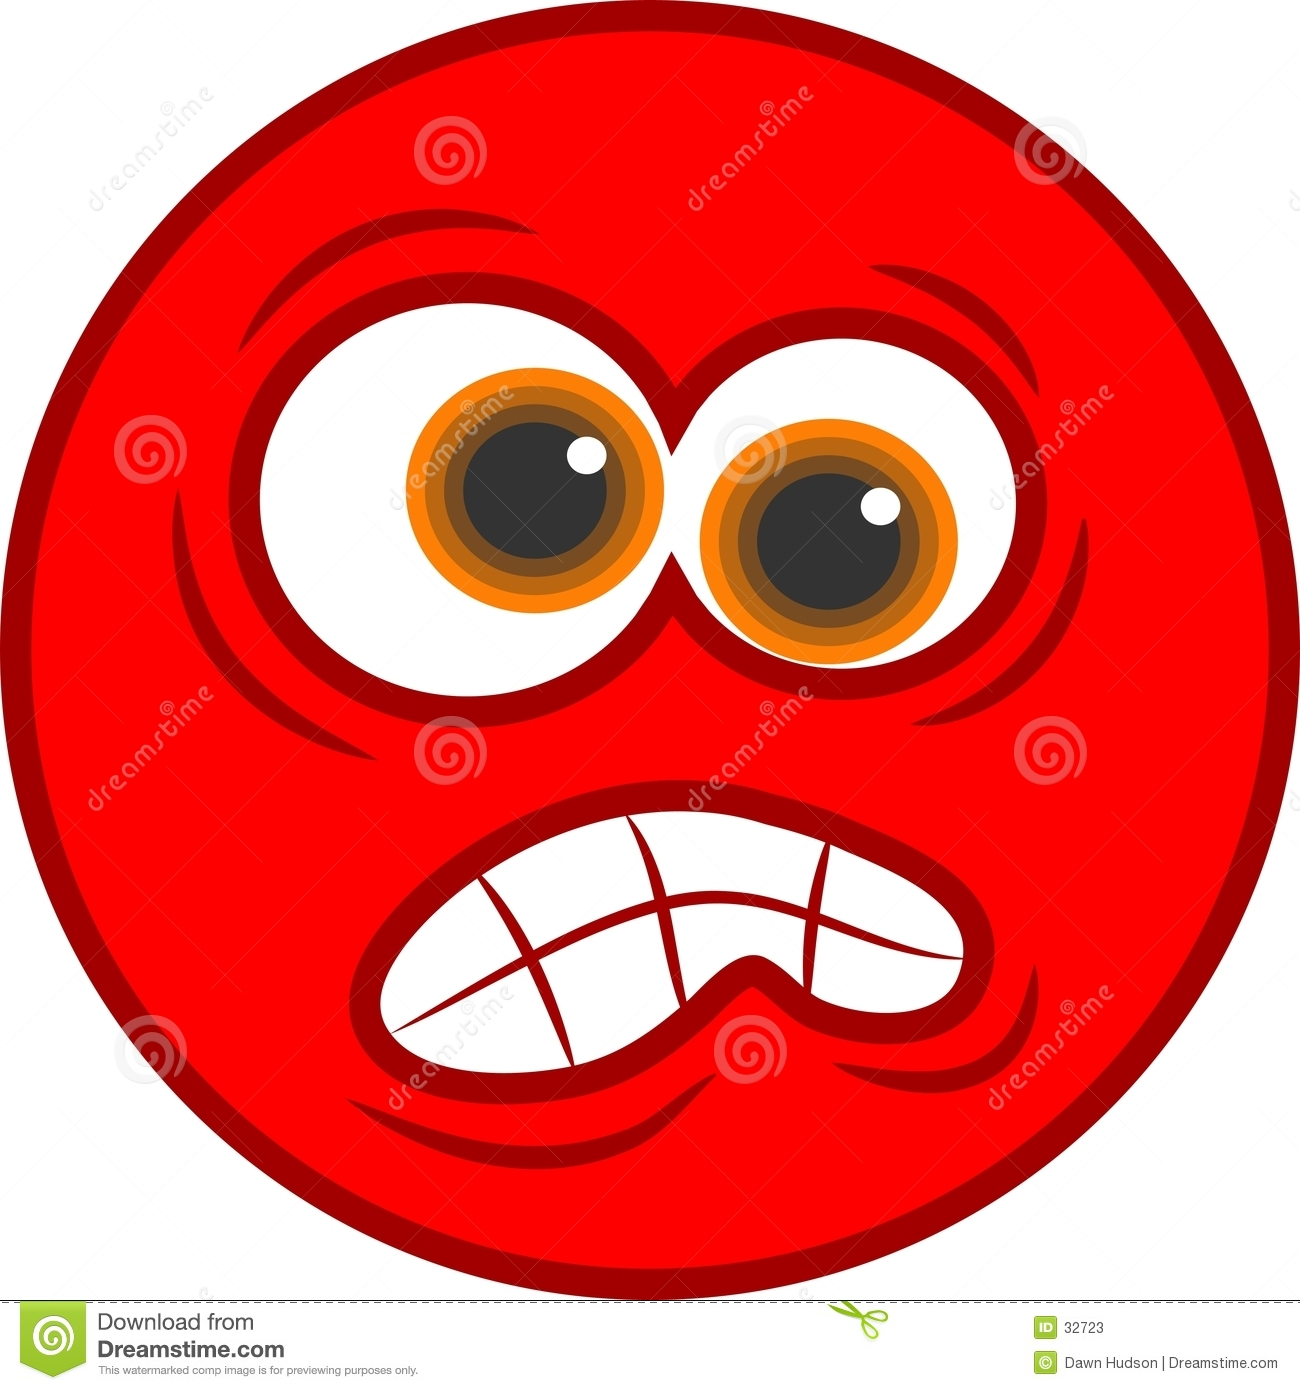 angry smiley icon stock vector. illustration of unhappy - 32723